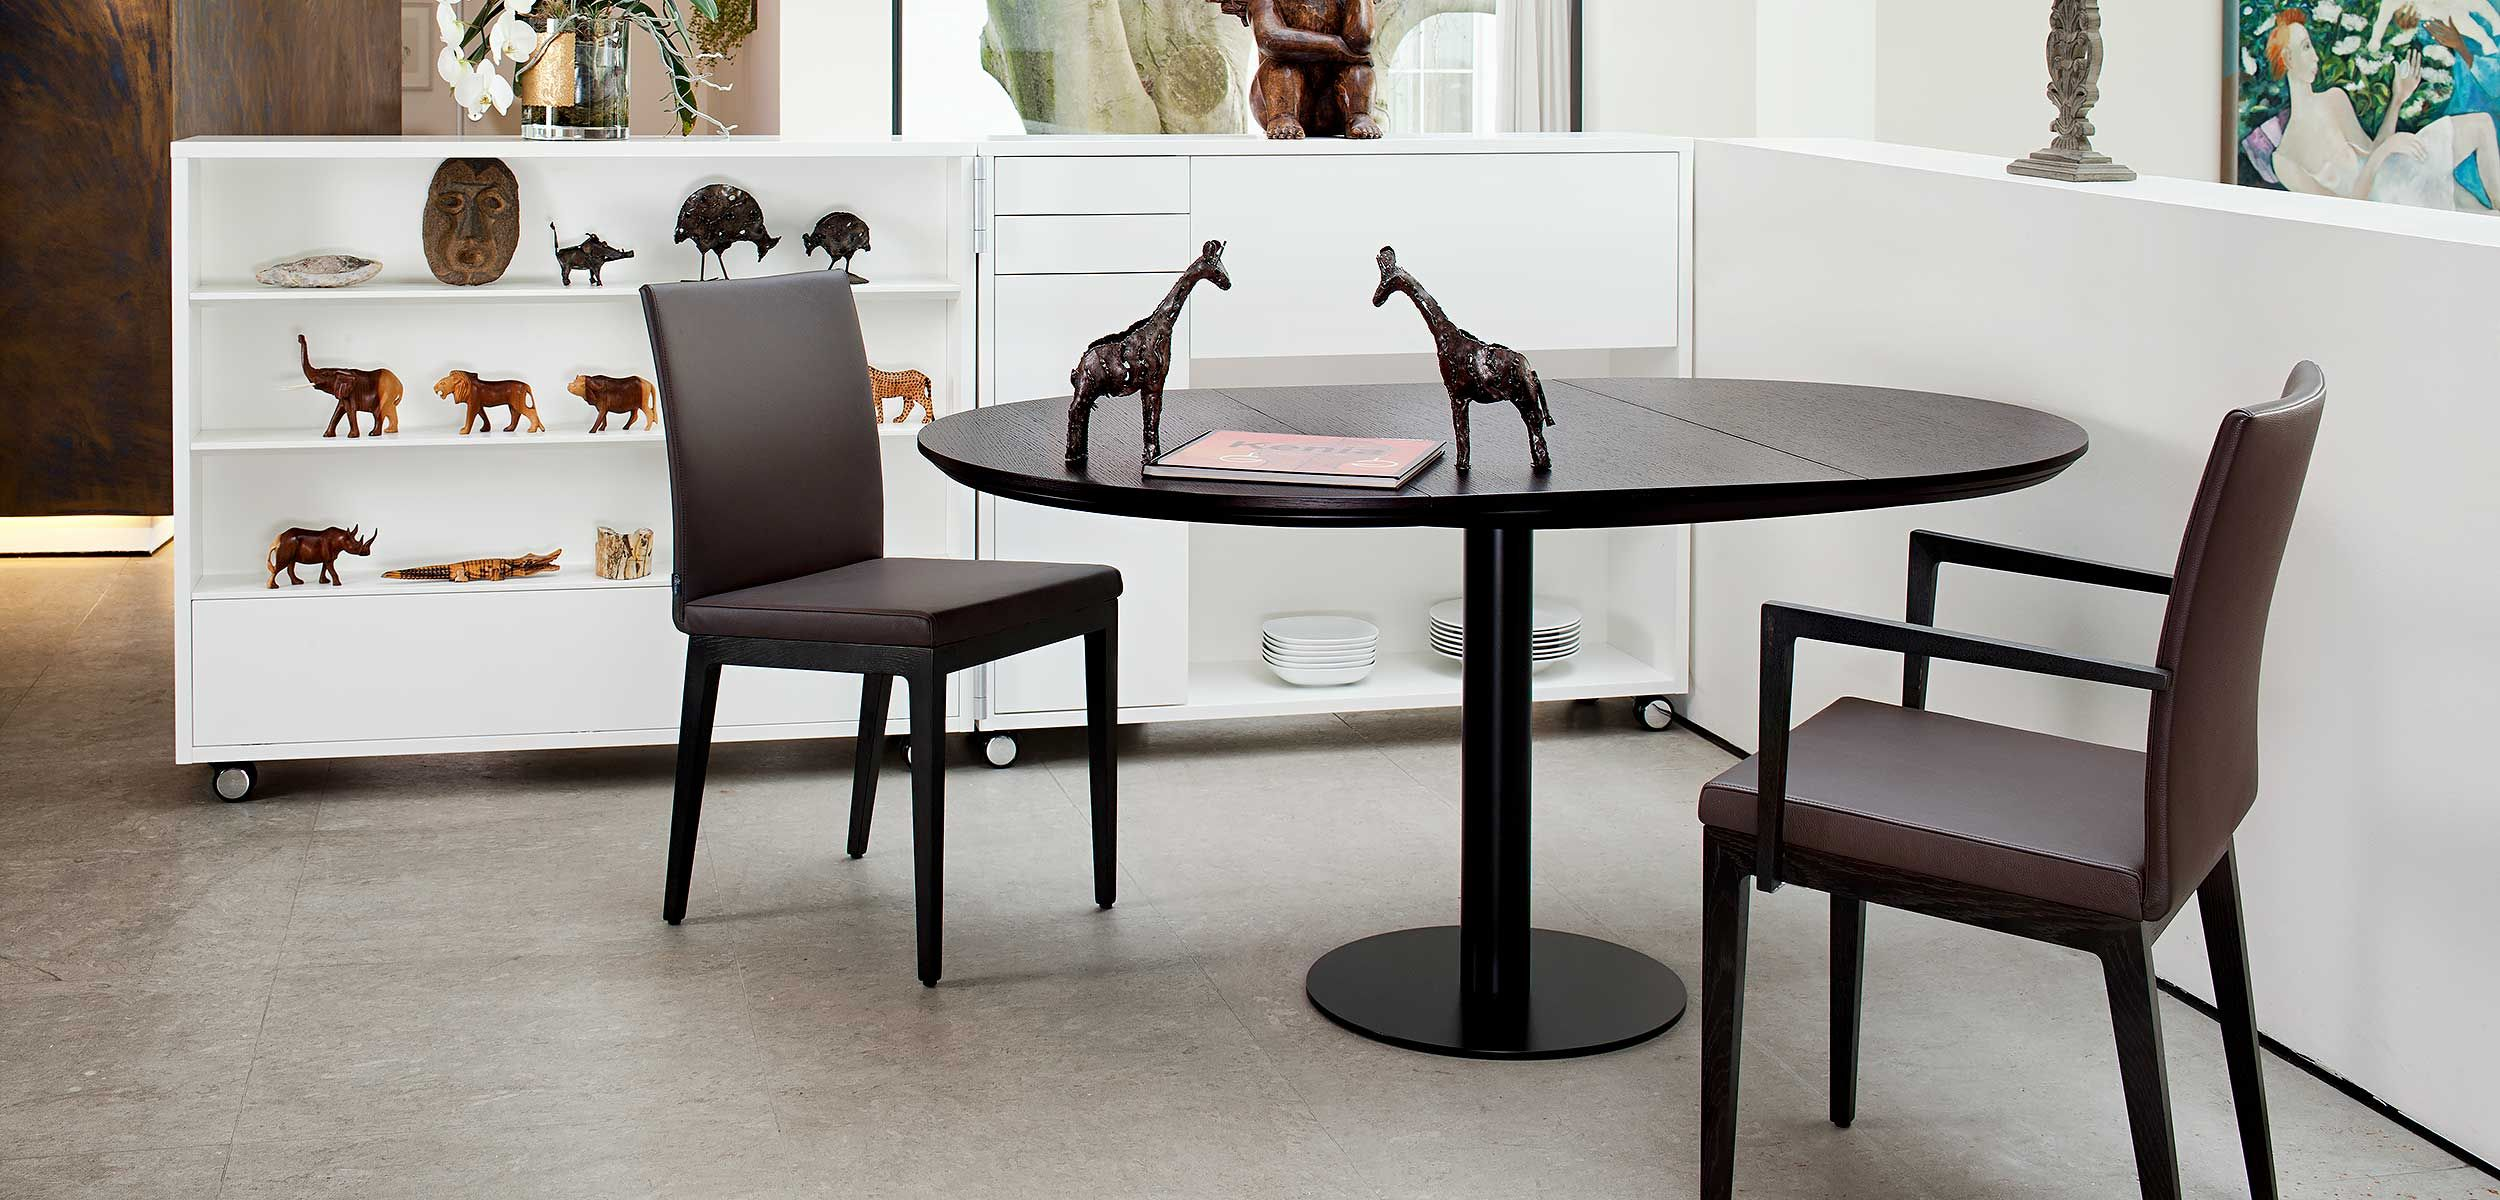 Luxury kitchen tables for apartments light of dining room for W kitchen table taipei